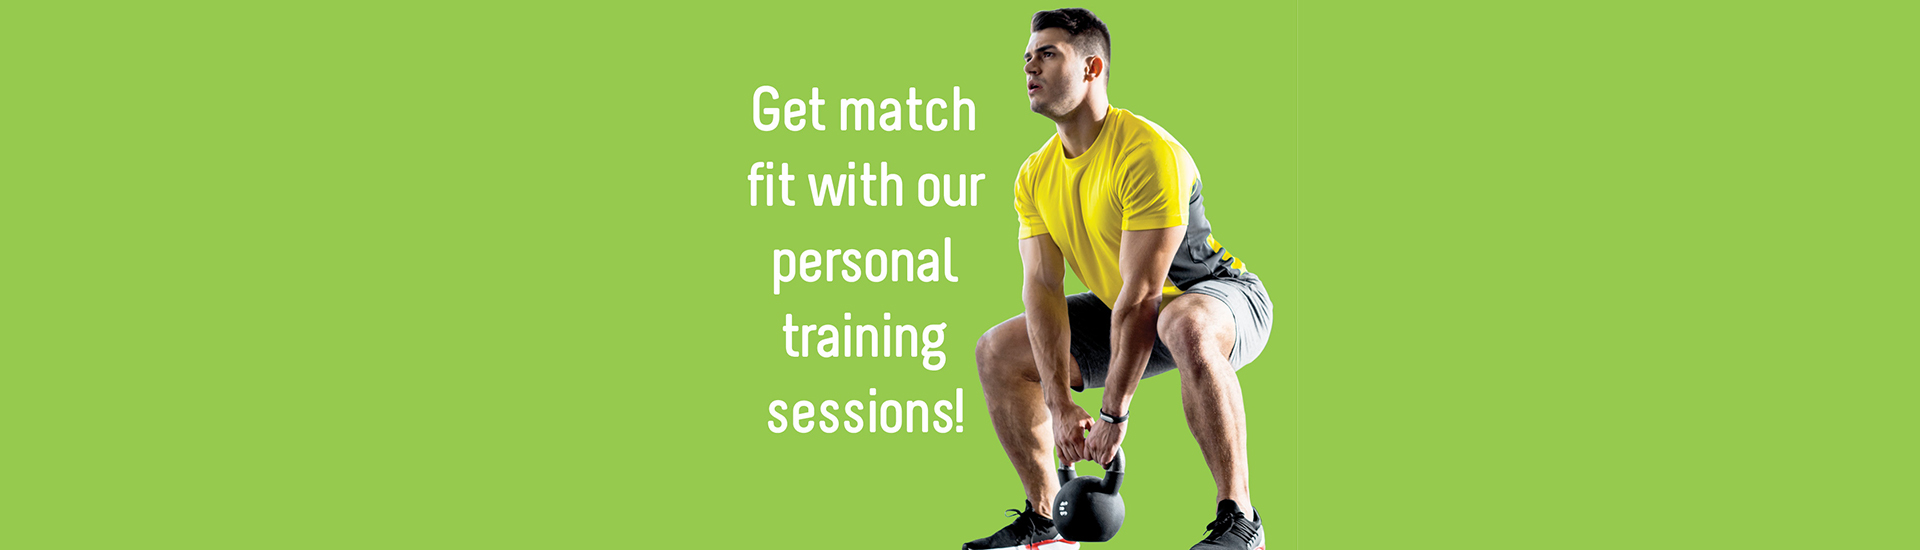 Personal training session promotion image